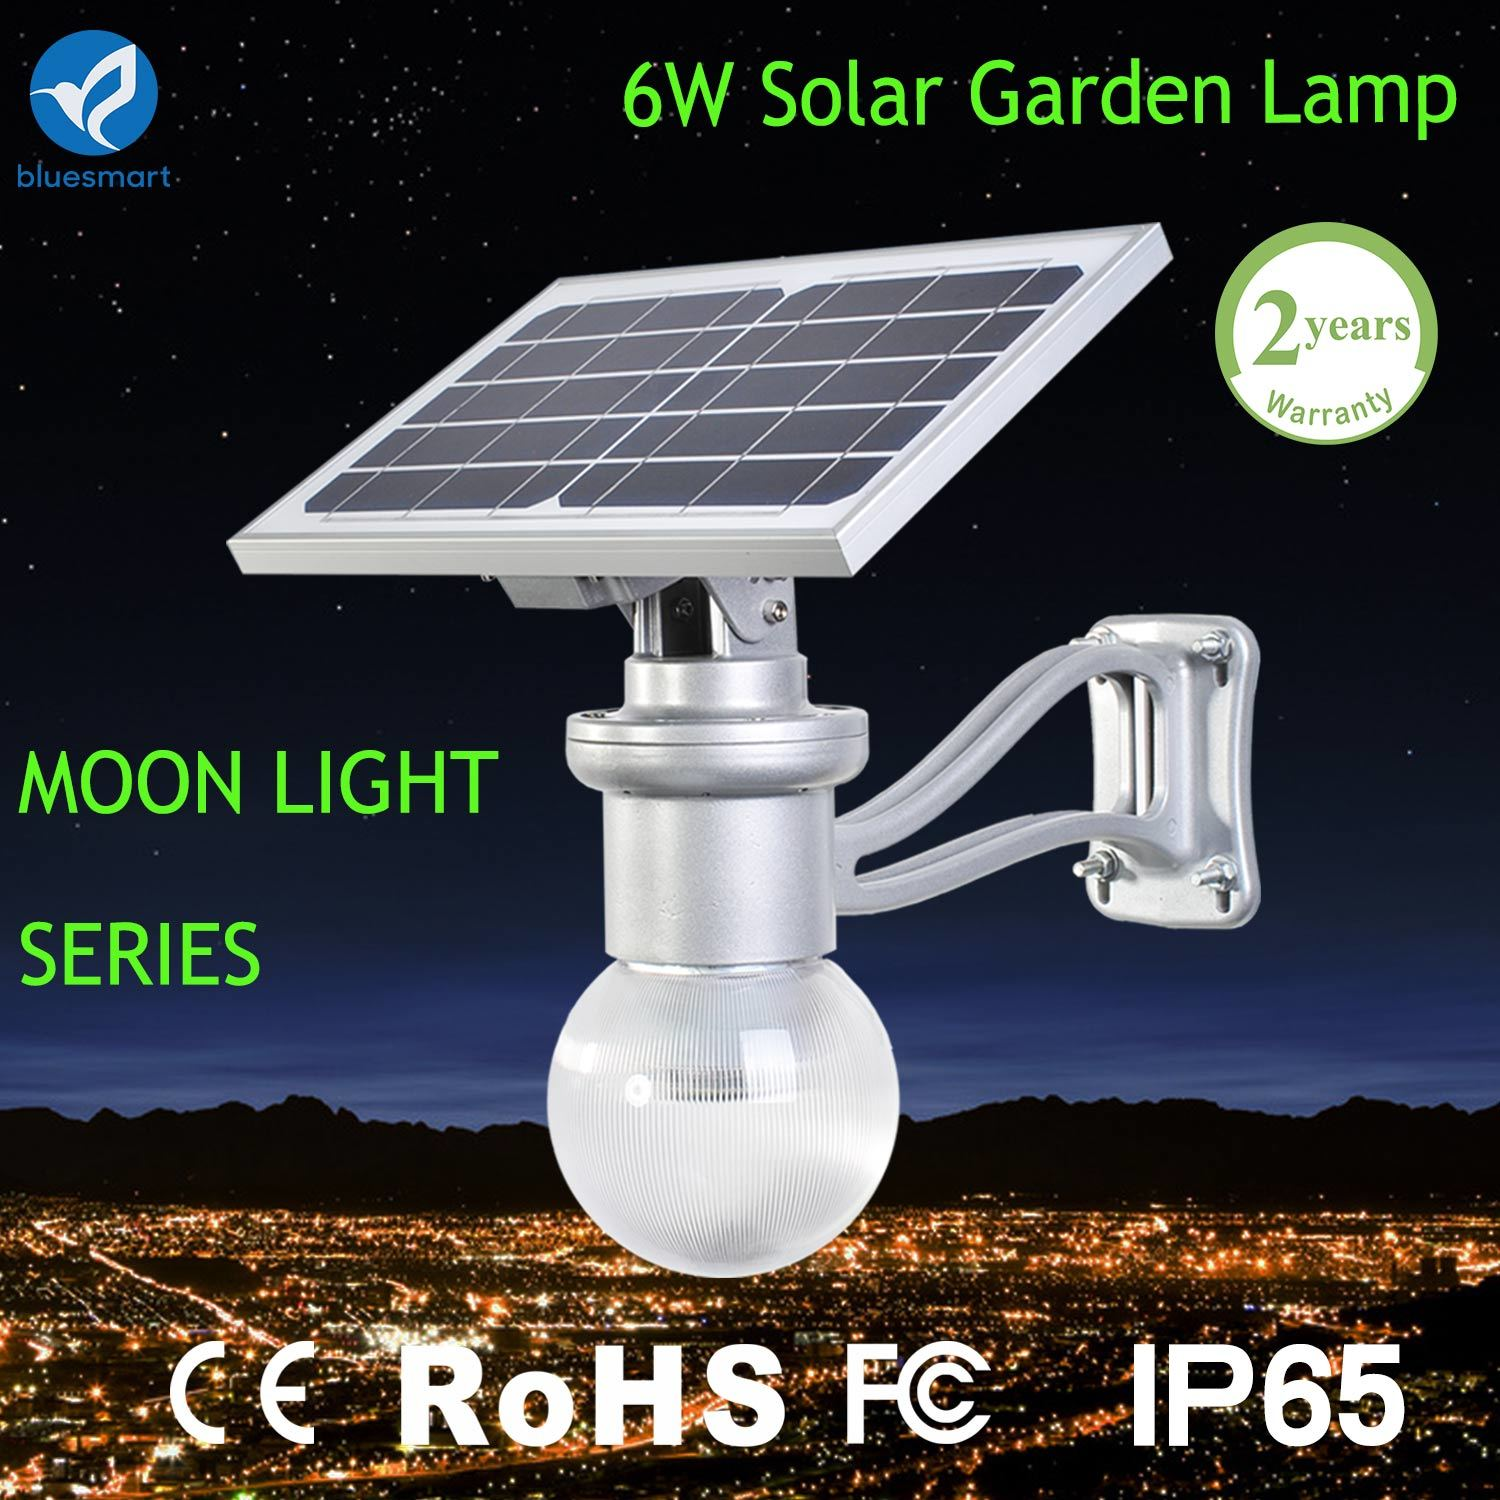 6W Solar LED Garden Lamp with Remote Control